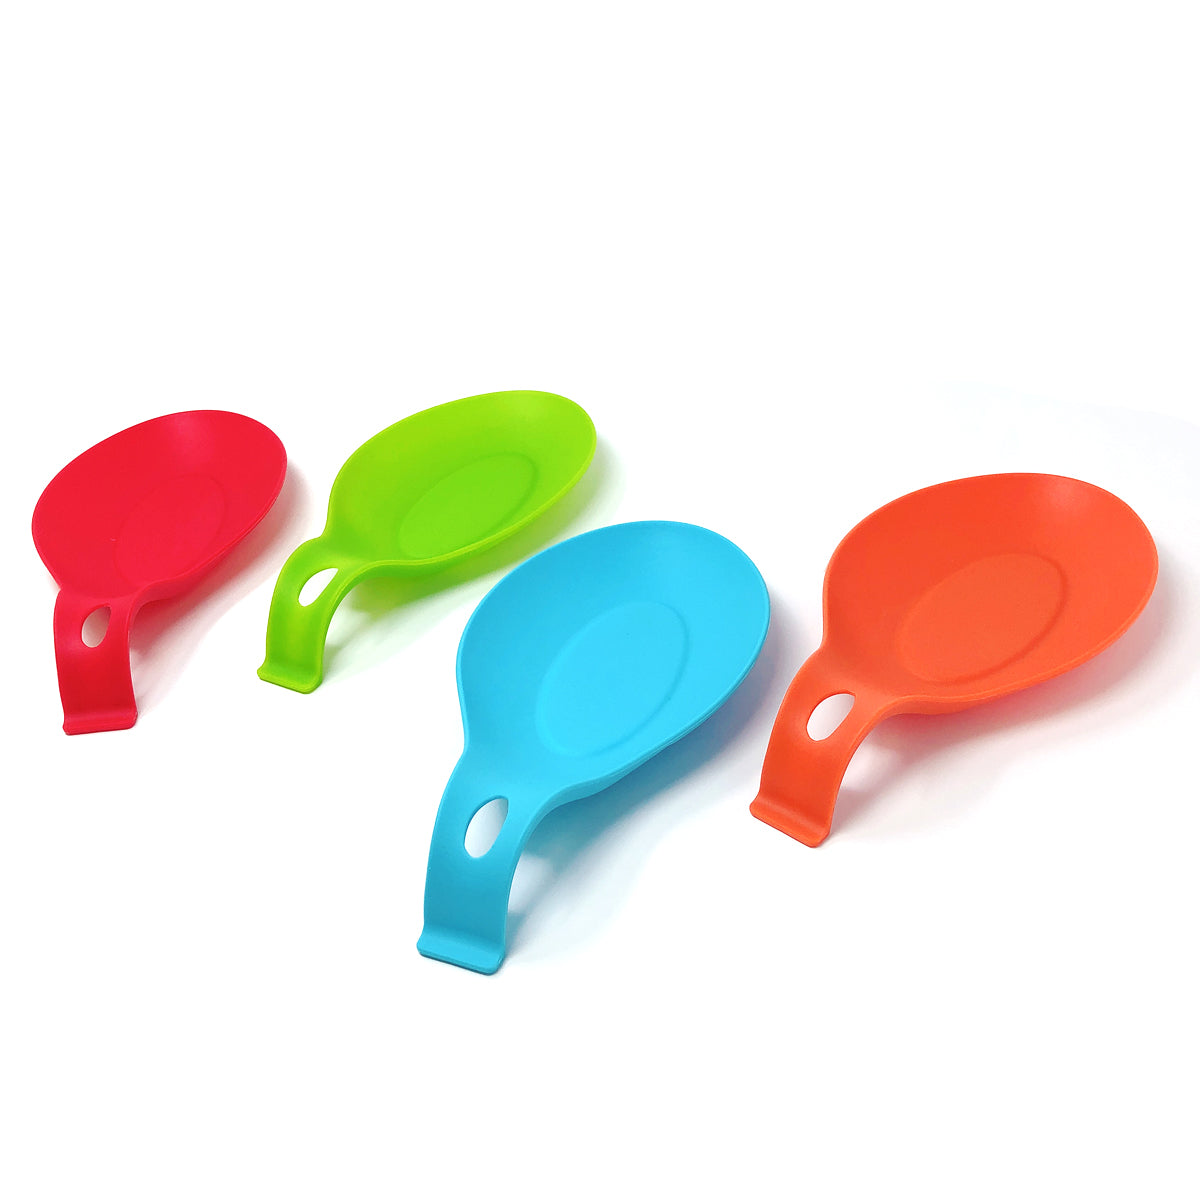 Wrapables® Large Silicon Heat Resistant Spoon Rest Utensil Spatula Ladle Holder (Set of 4)